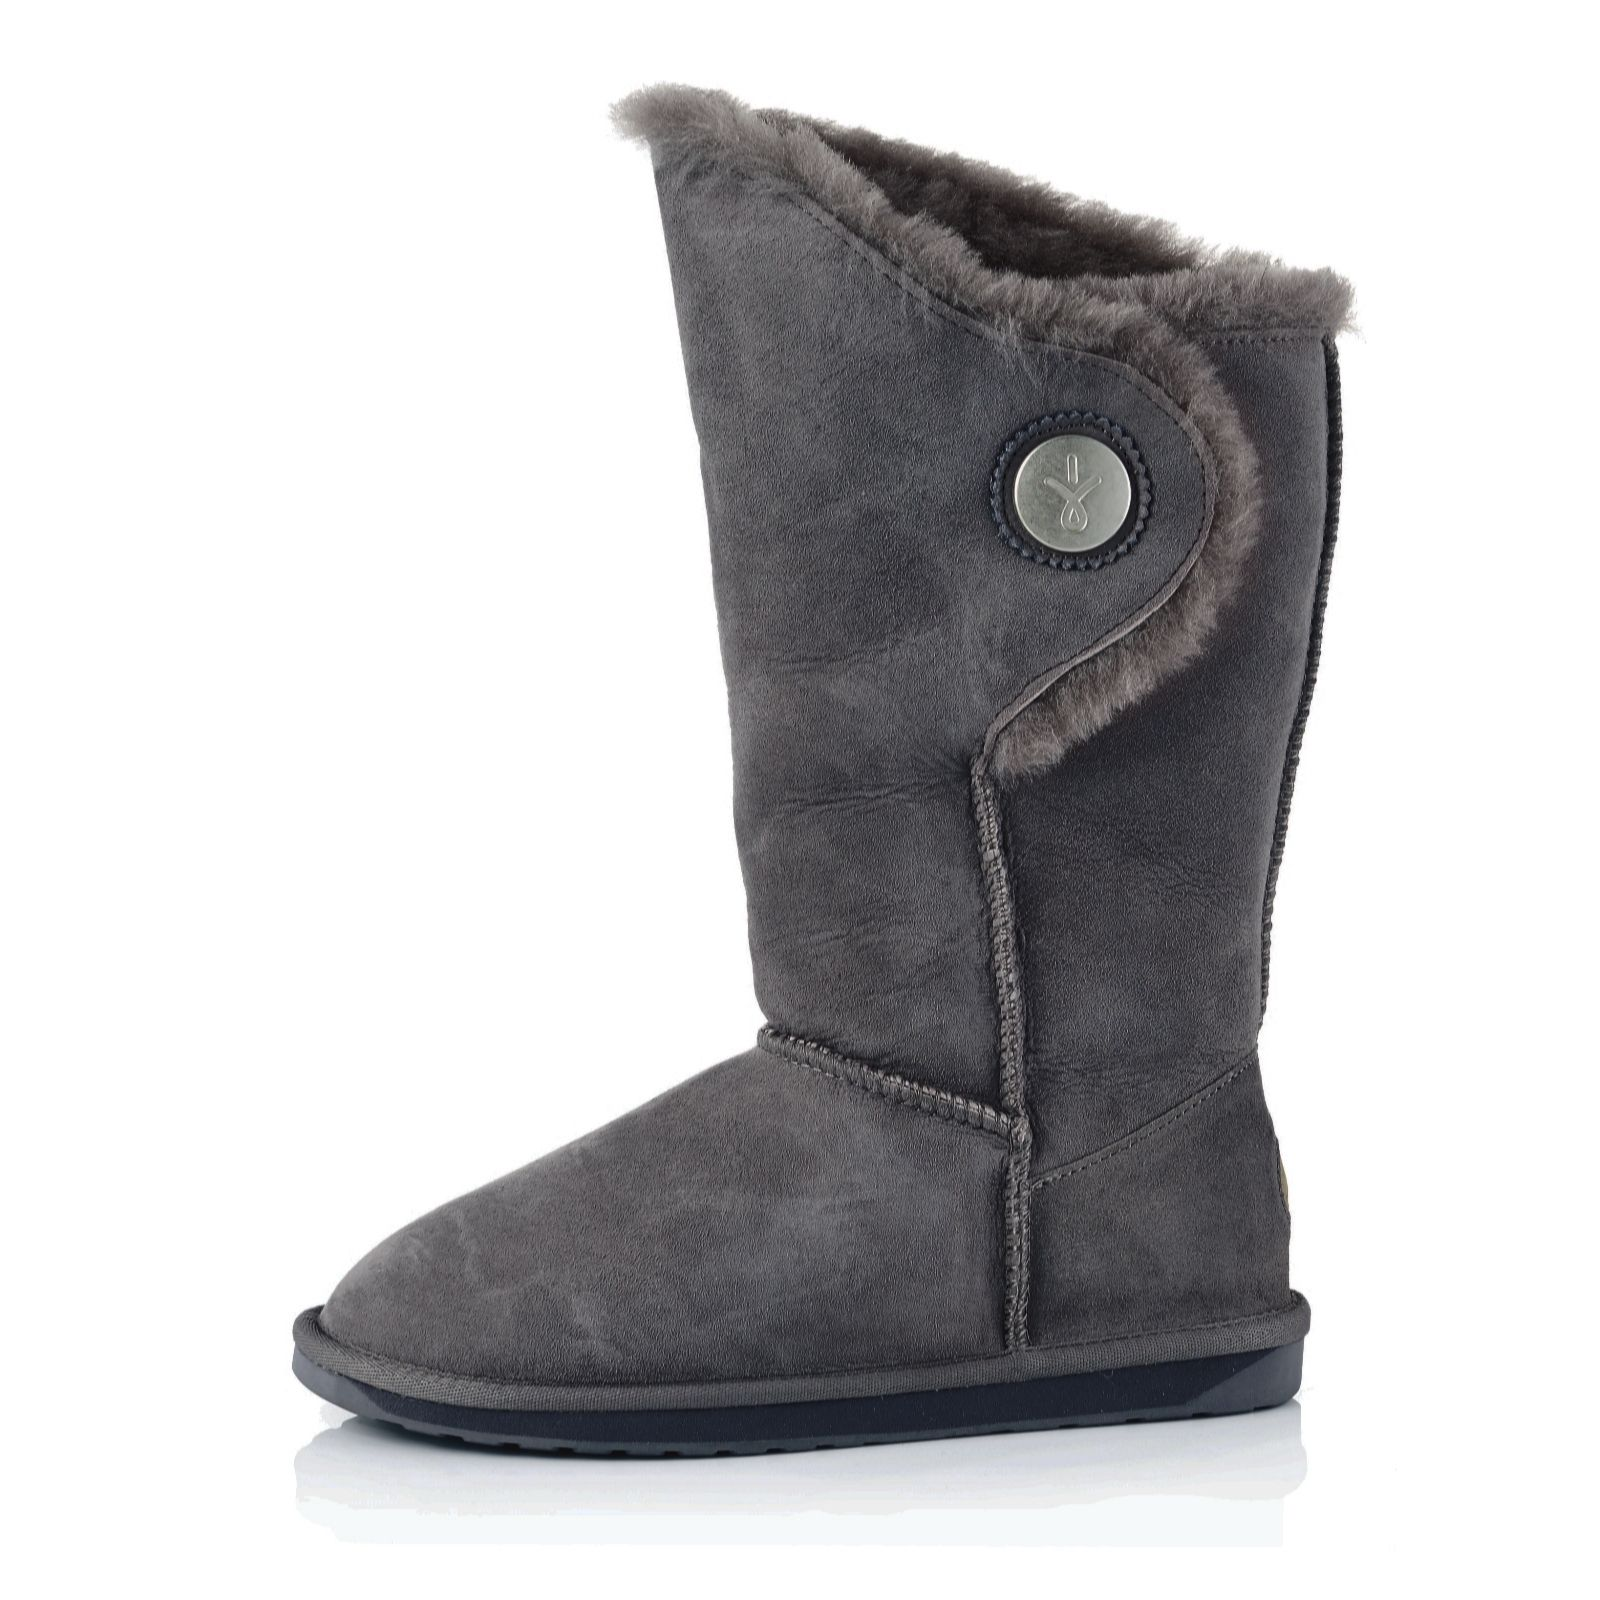 9bb2159cbe7 Emu Originals Hakea Hi Water Resistant Sheepskin Boots - Page 1 - QVC UK